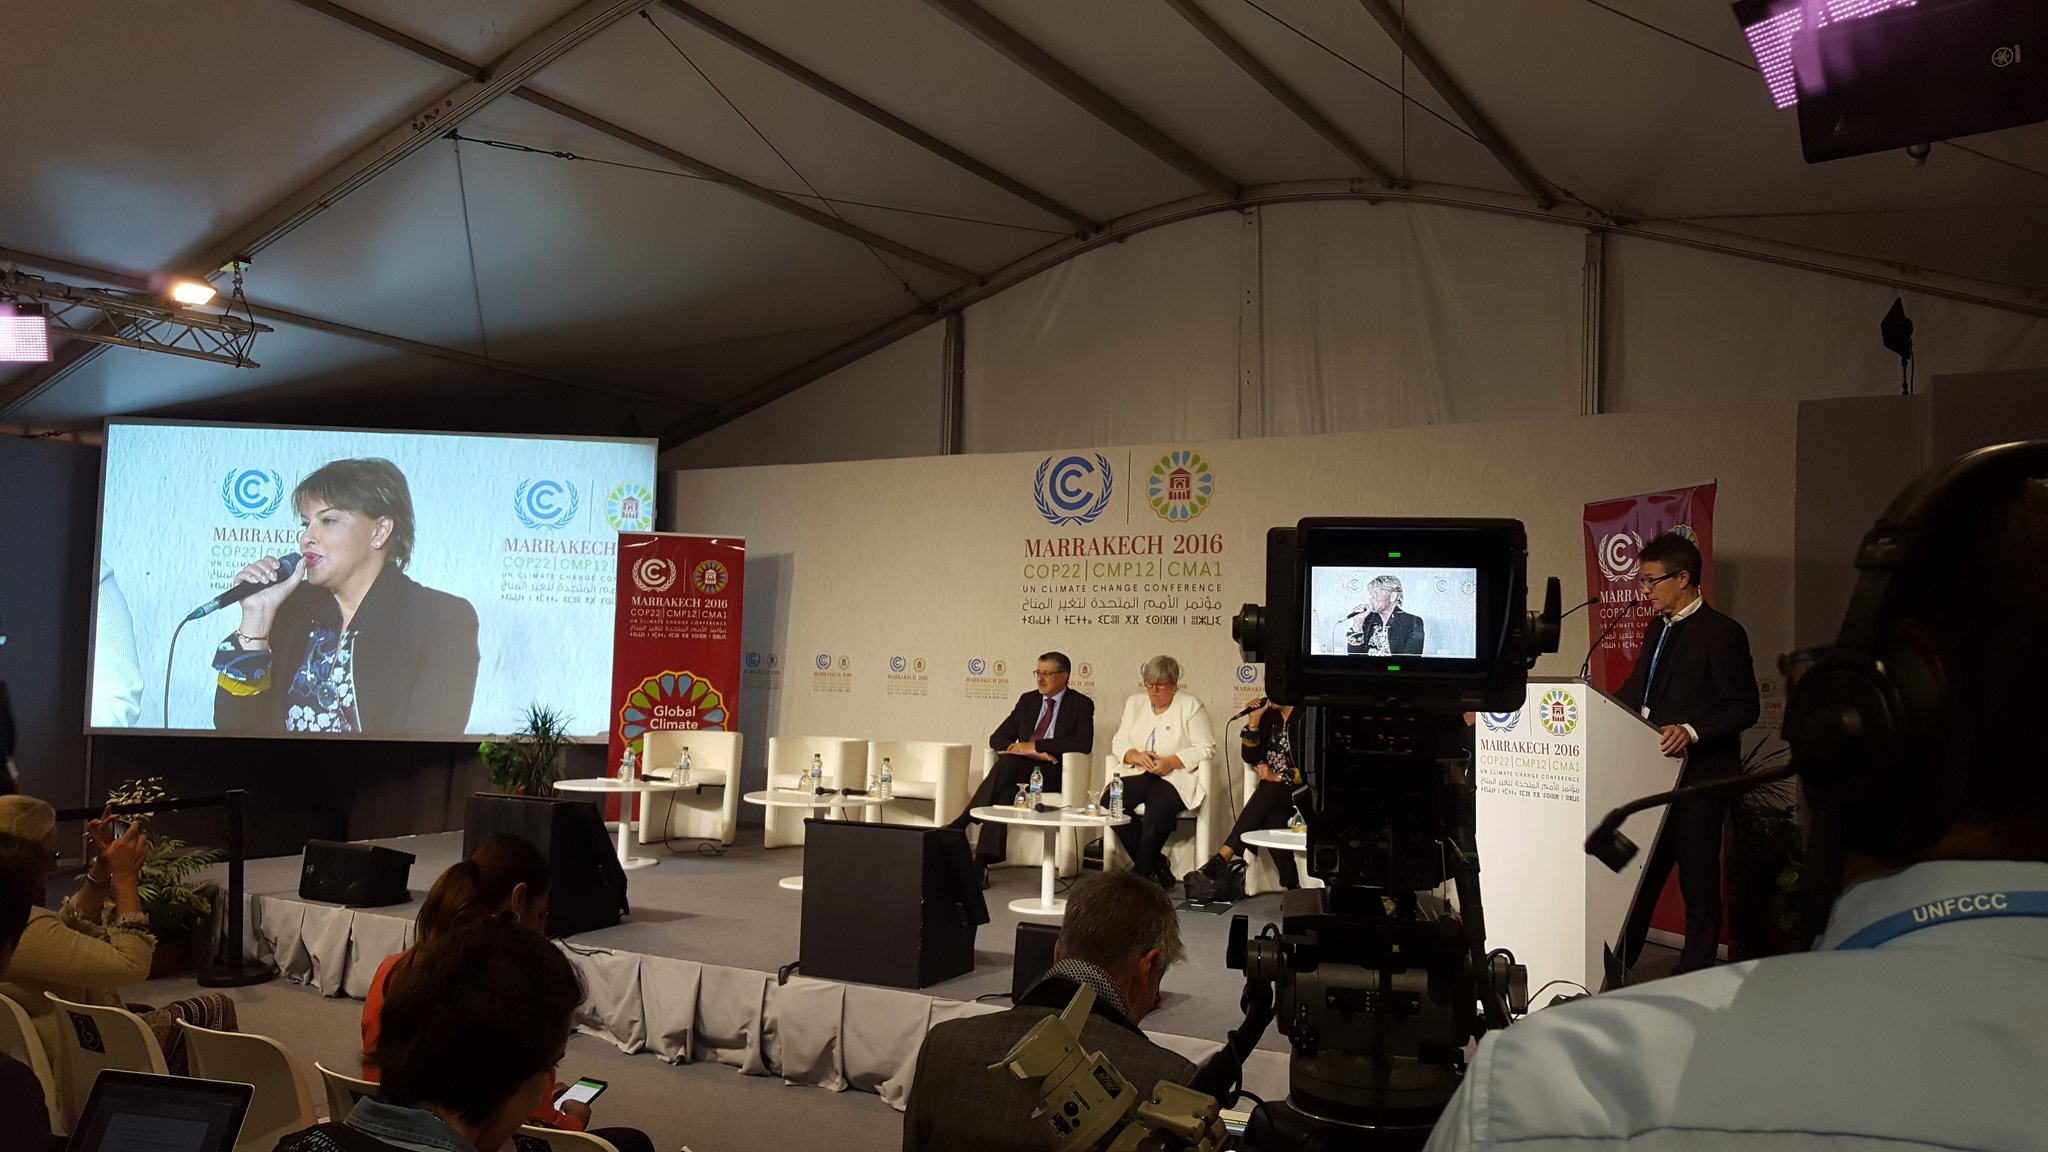 Energy day at #COP22 opens with a press conference @IRENA @SE4ALL https://t.co/RyXOUvIfwh